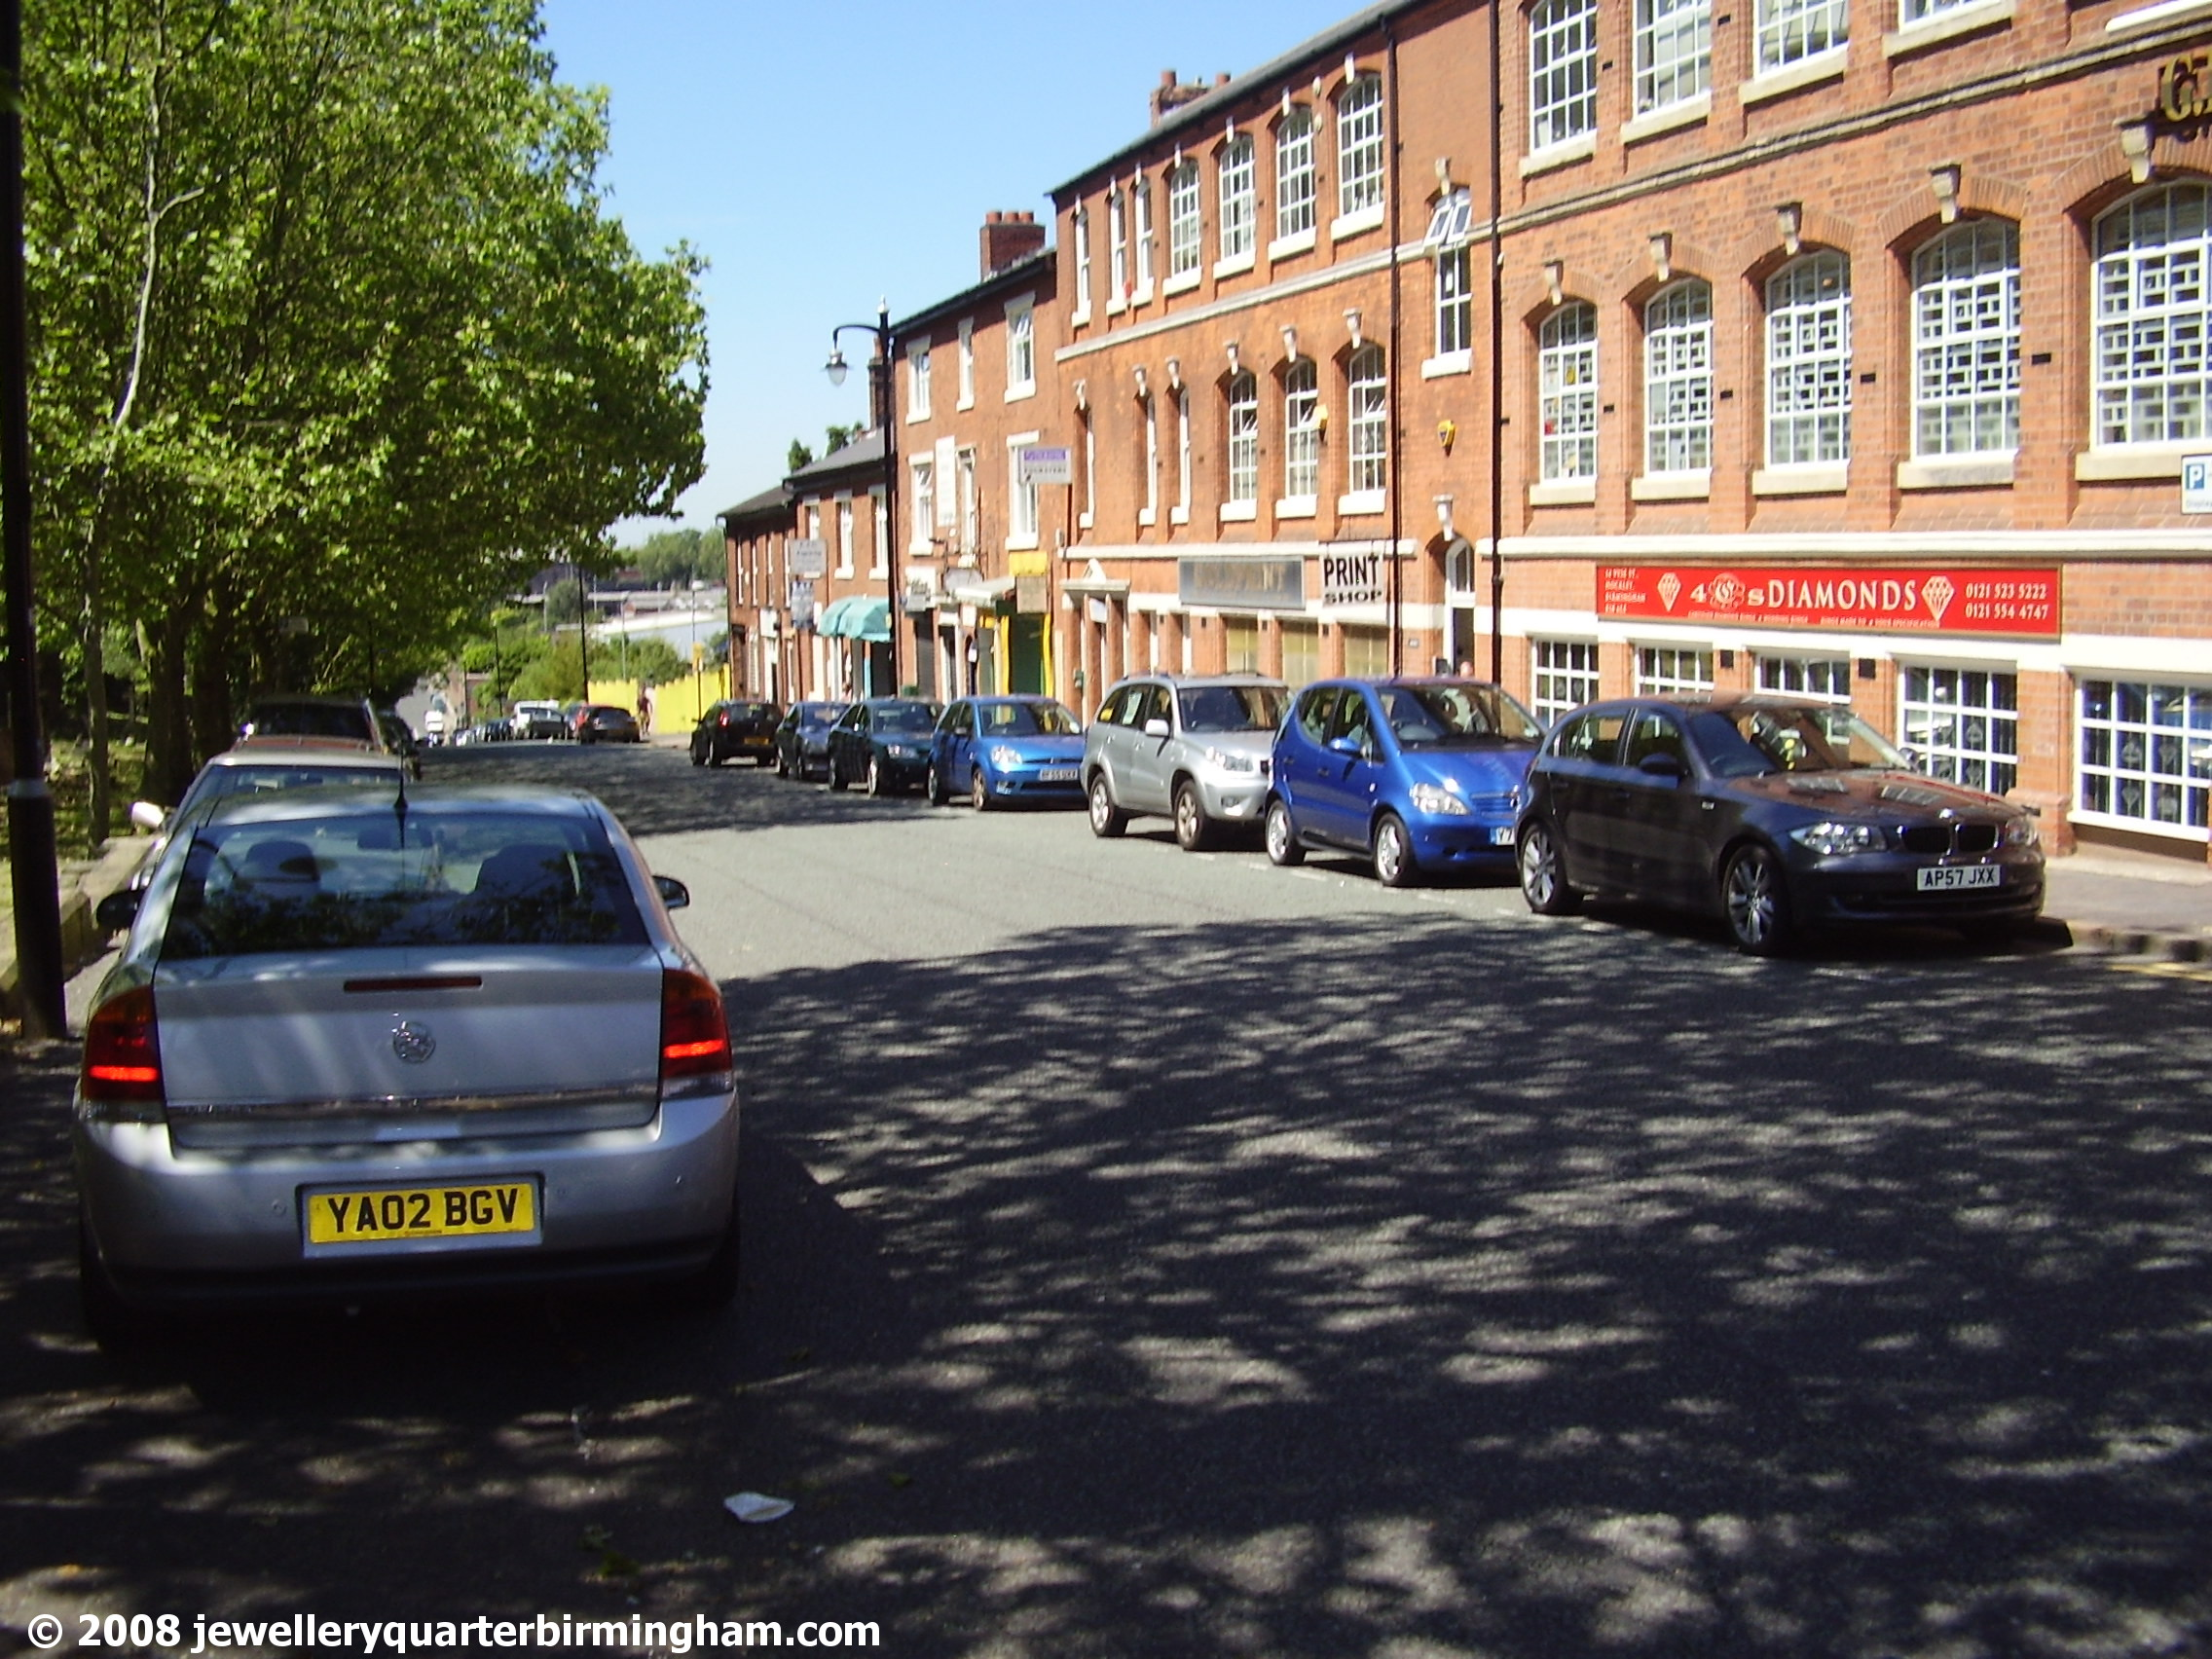 Pickford-St-small-businesses-including-Jewellers-over-.jpg 2008